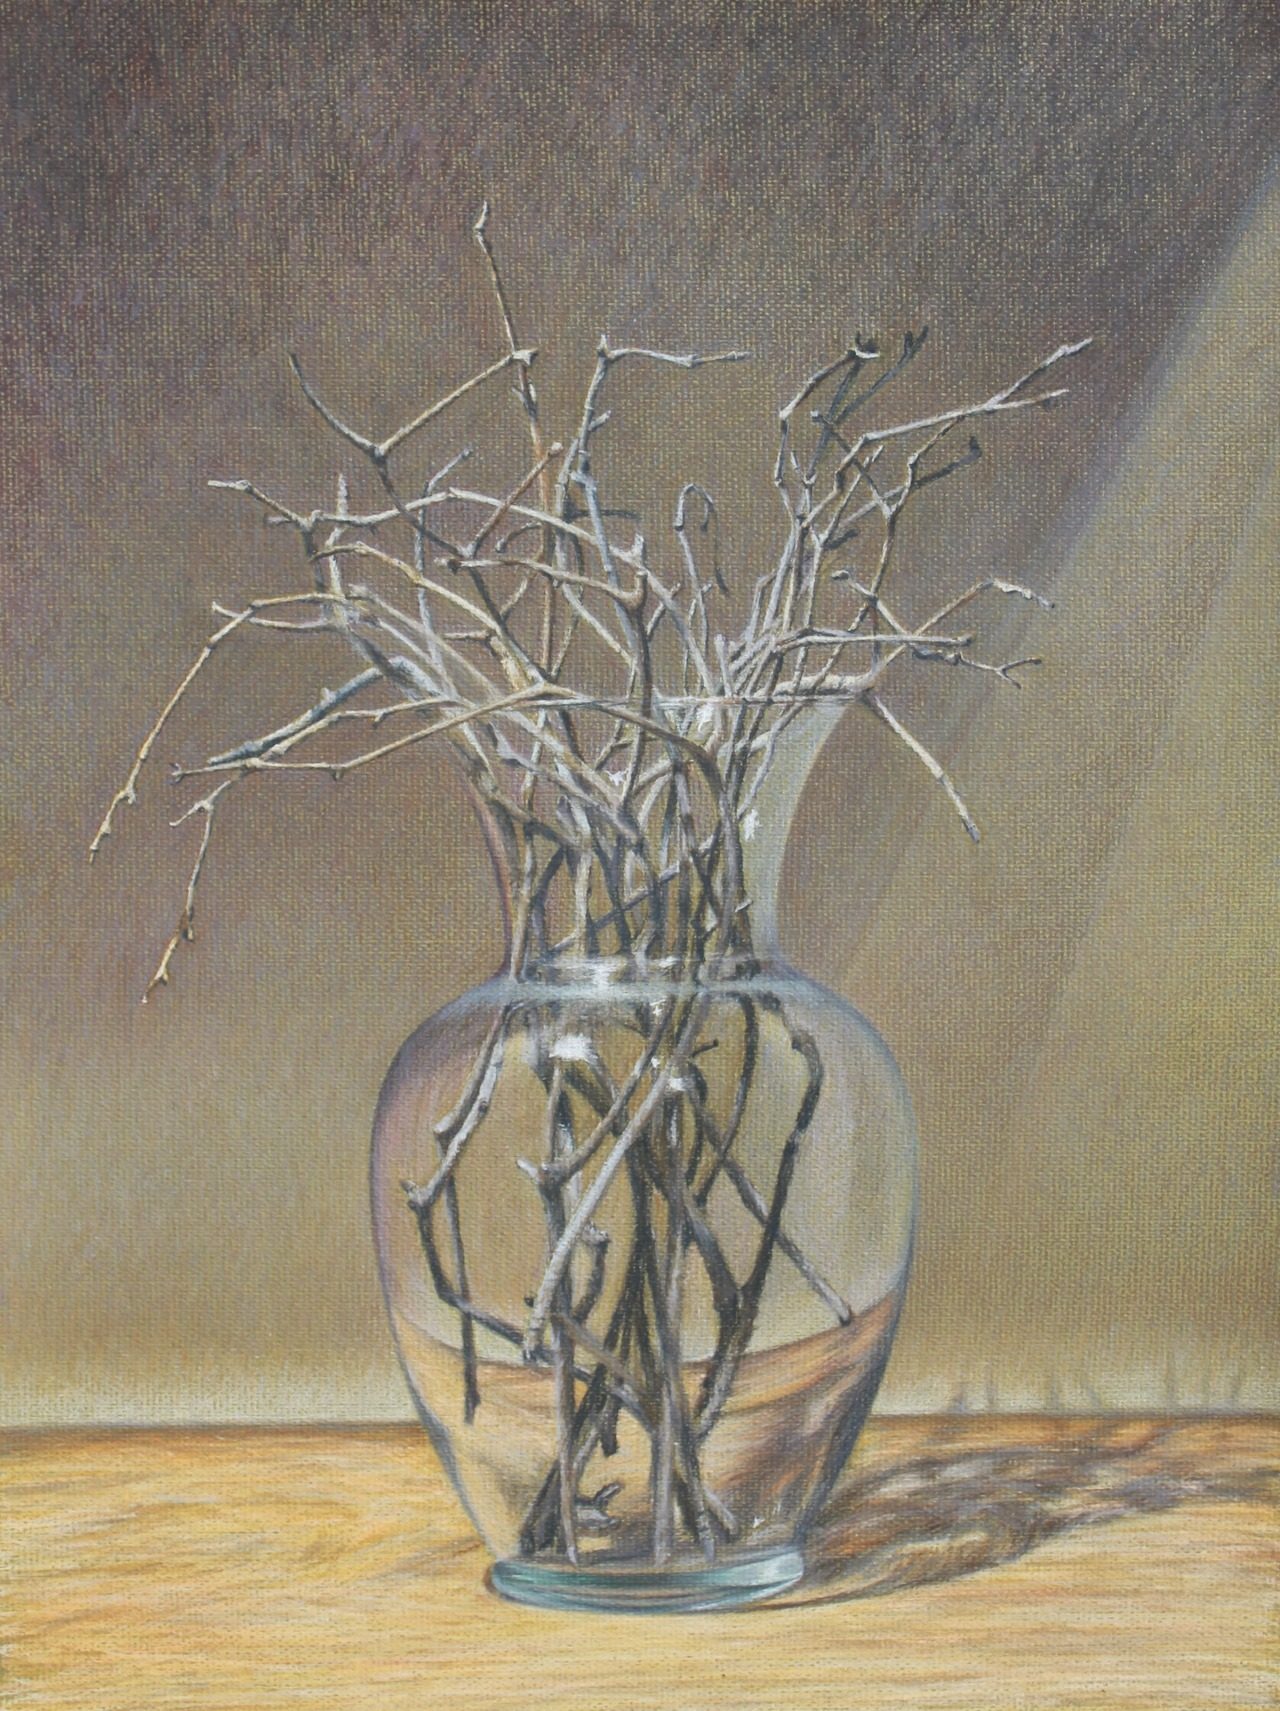 "In Lieu Of Flowers. Colored pencils on toned paper. 19.5"" x 25.5"", c2012 Heather Boyd."